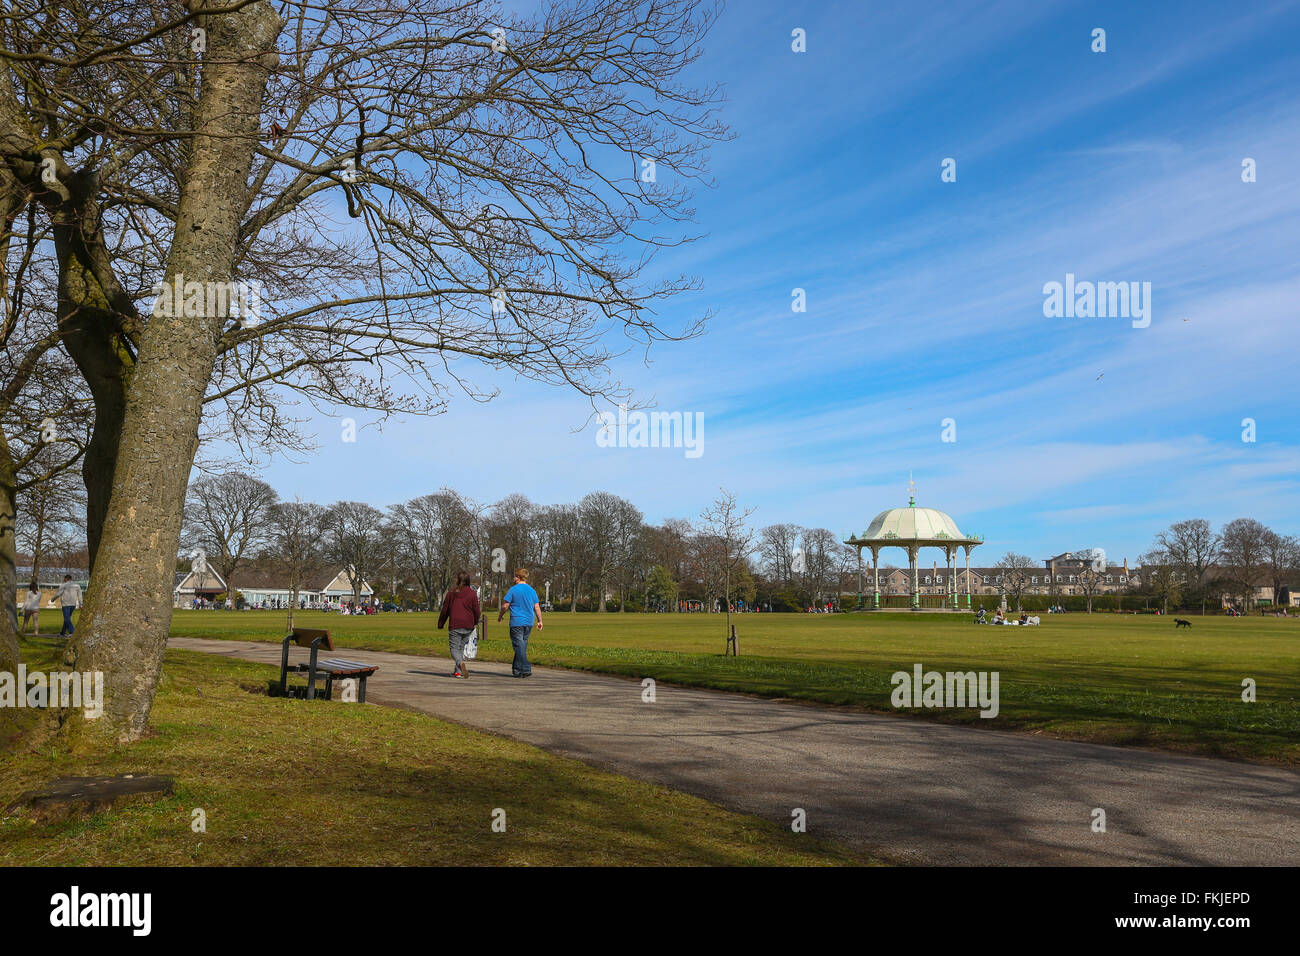 People walking by the traditional bandstand within Duthie Park in the city of Aberdeen, Scotland, UK - Stock Image